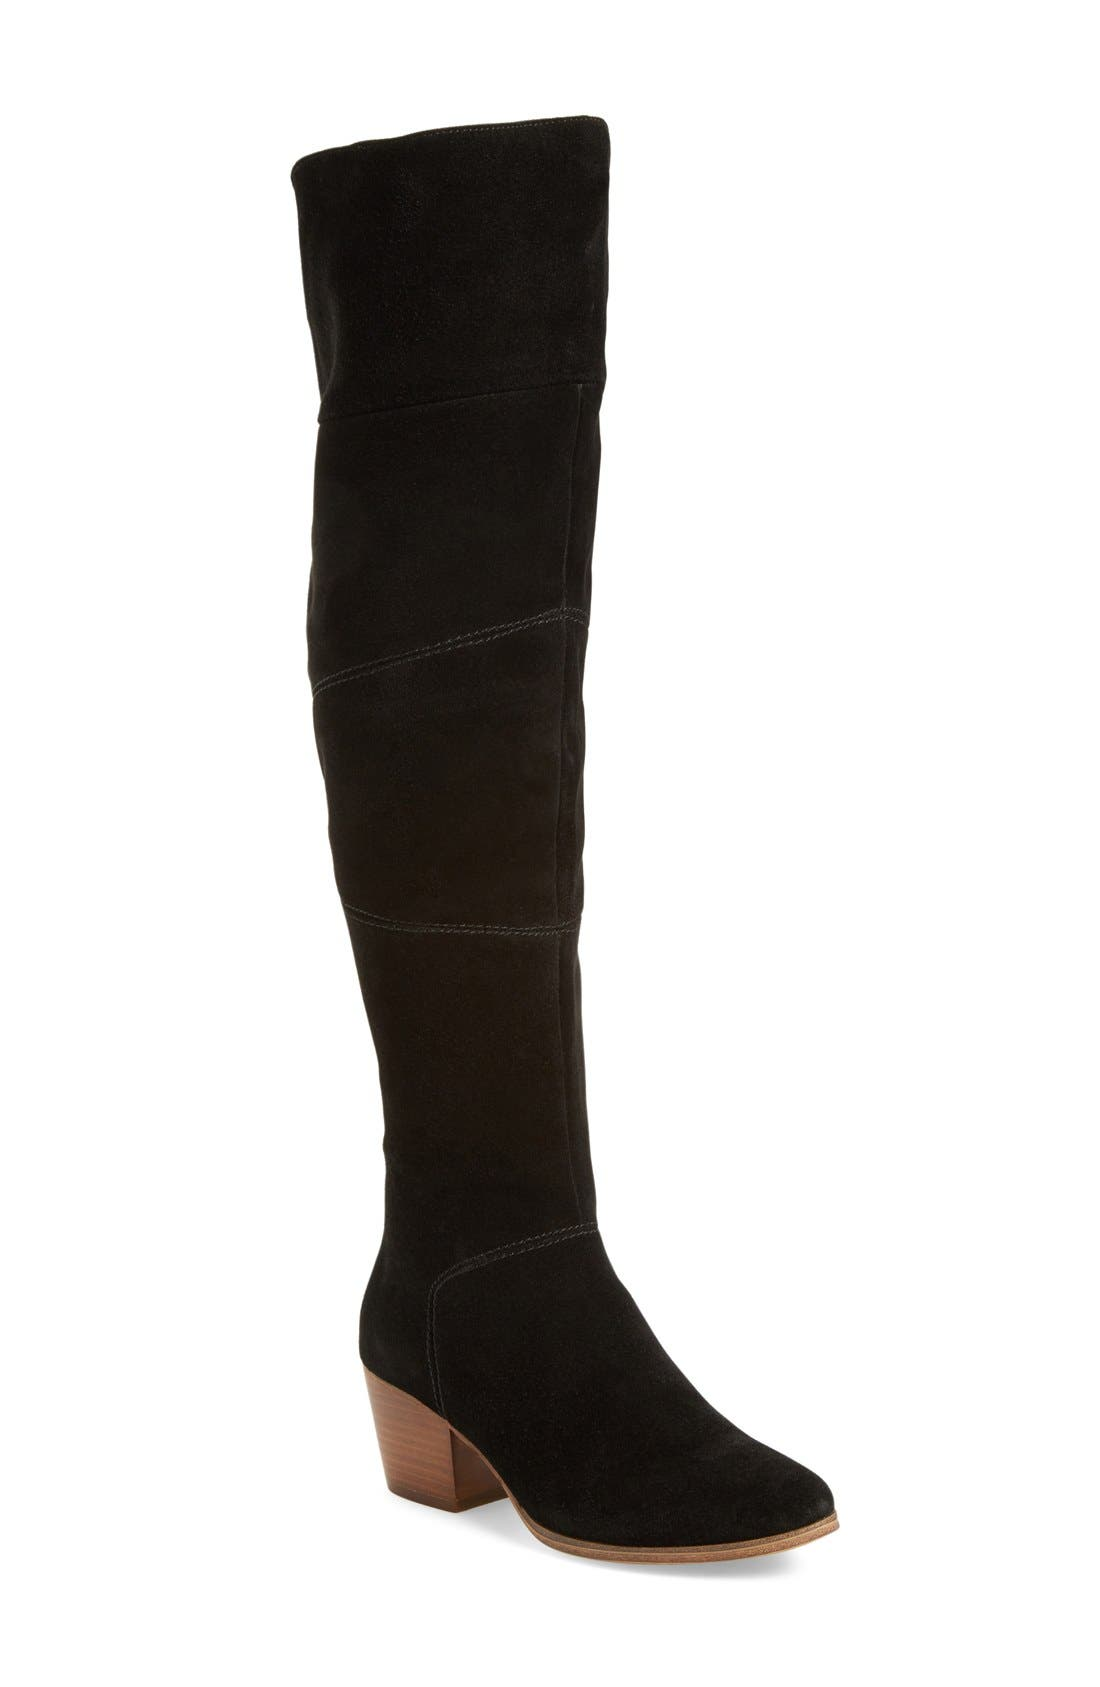 Melbourne Over the Knee Boot,                         Main,                         color, BLACK SUEDE